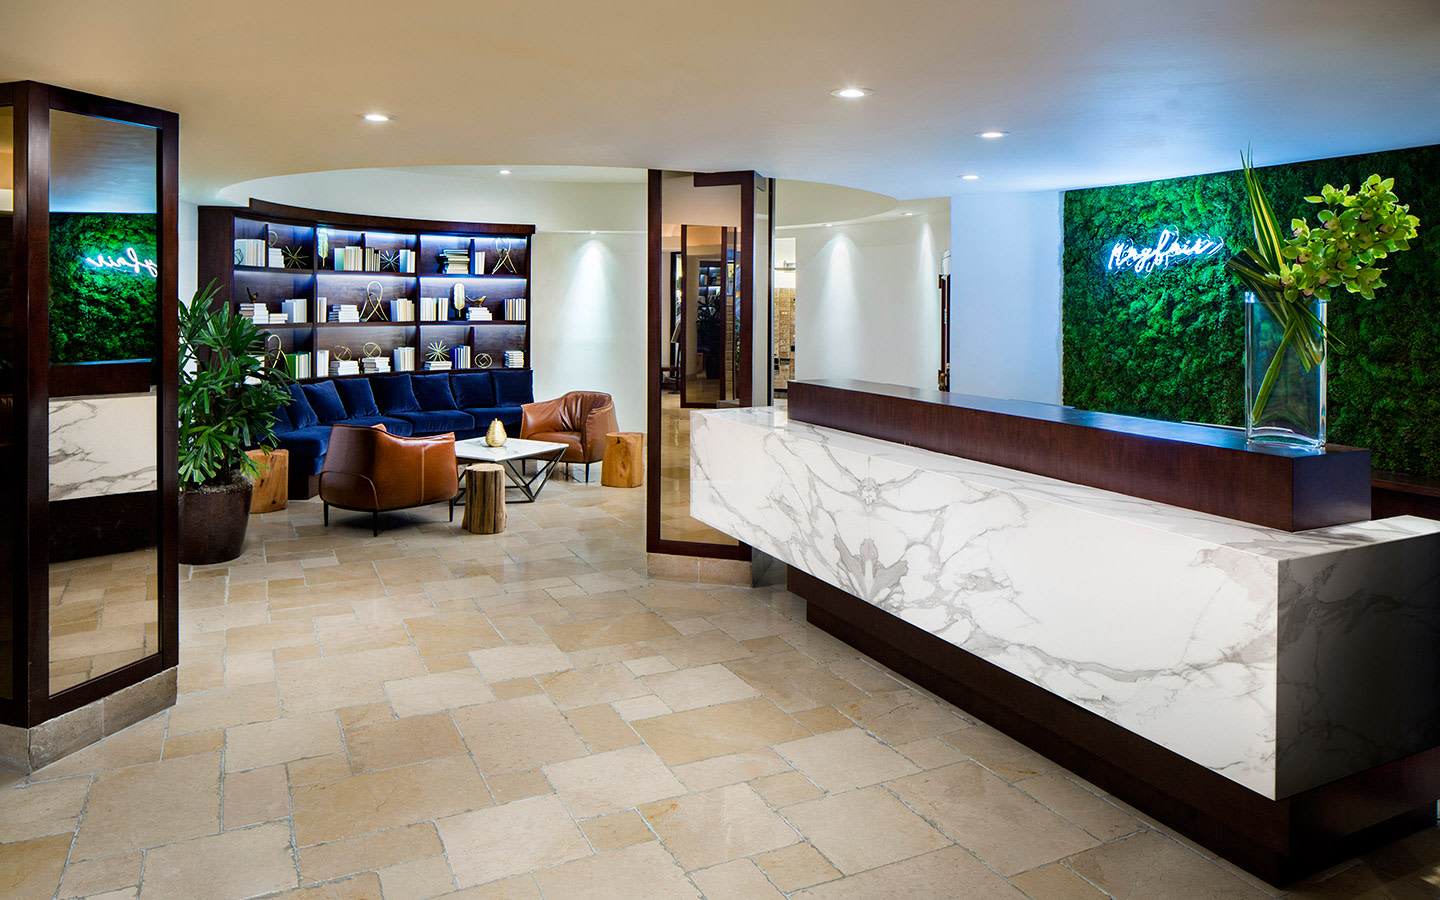 Mayfair Hotel & Spa Lobby